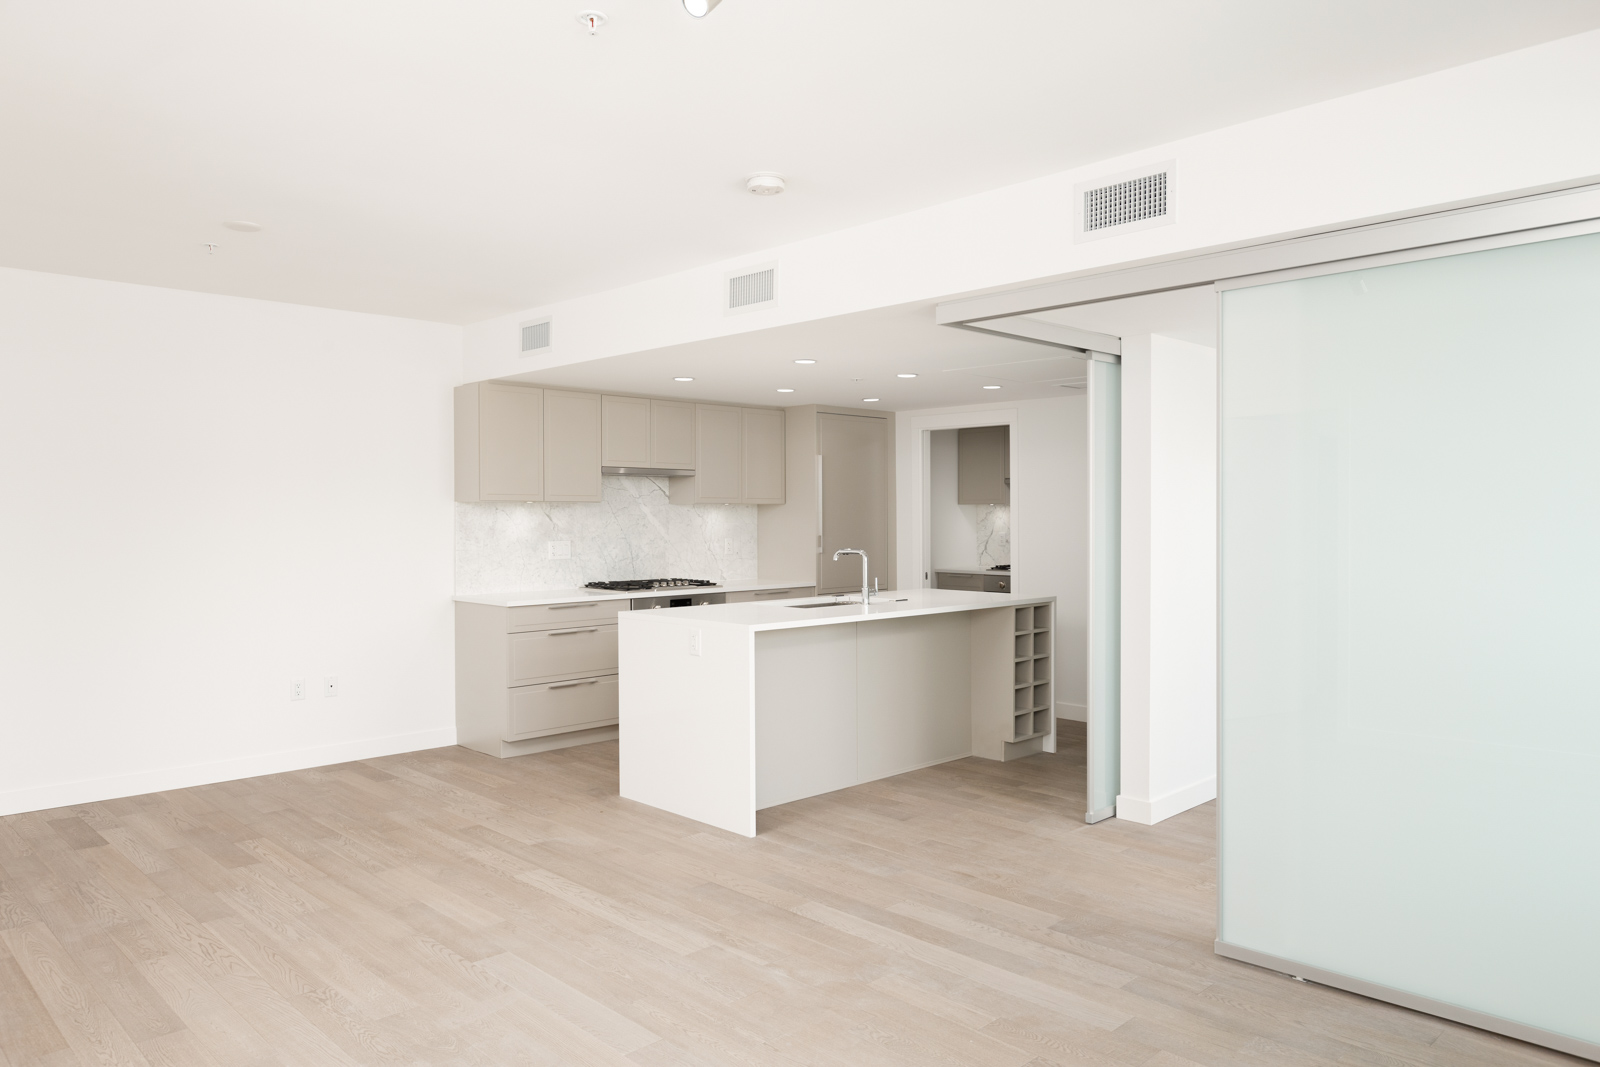 Kitchen and dining area of Vancouver rental townhome.